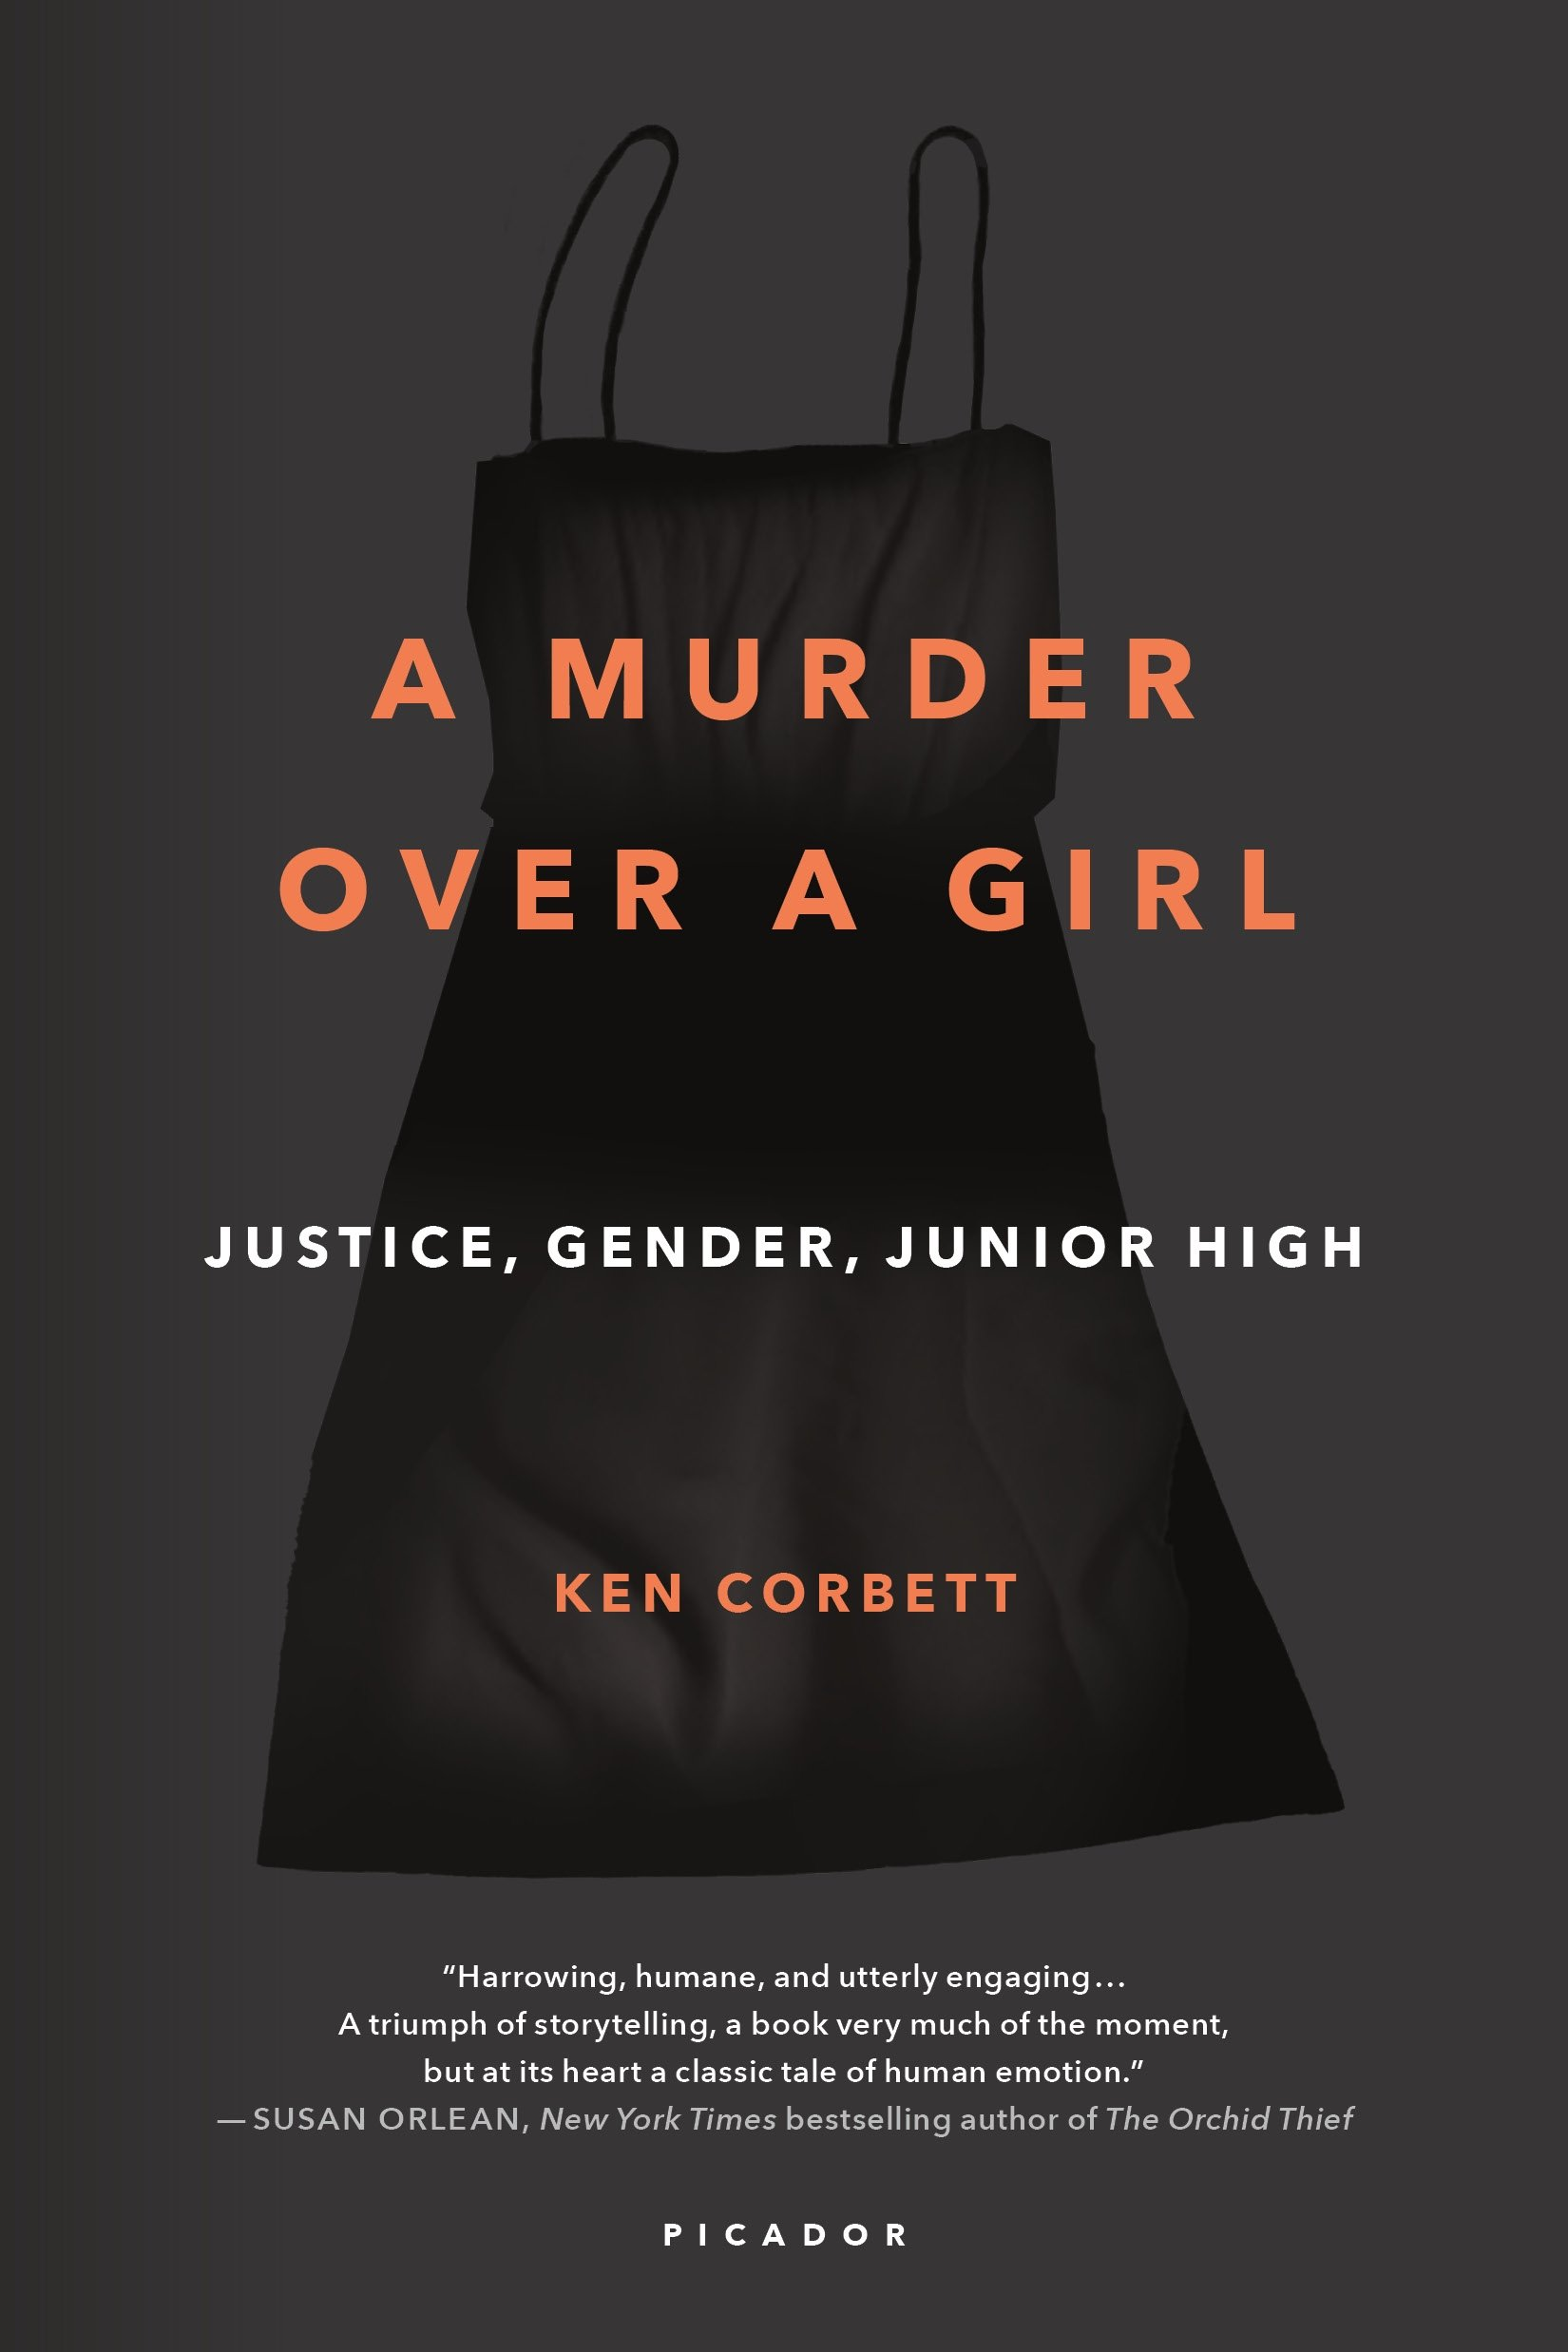 A Murder Over a Girl by Ken Corbett